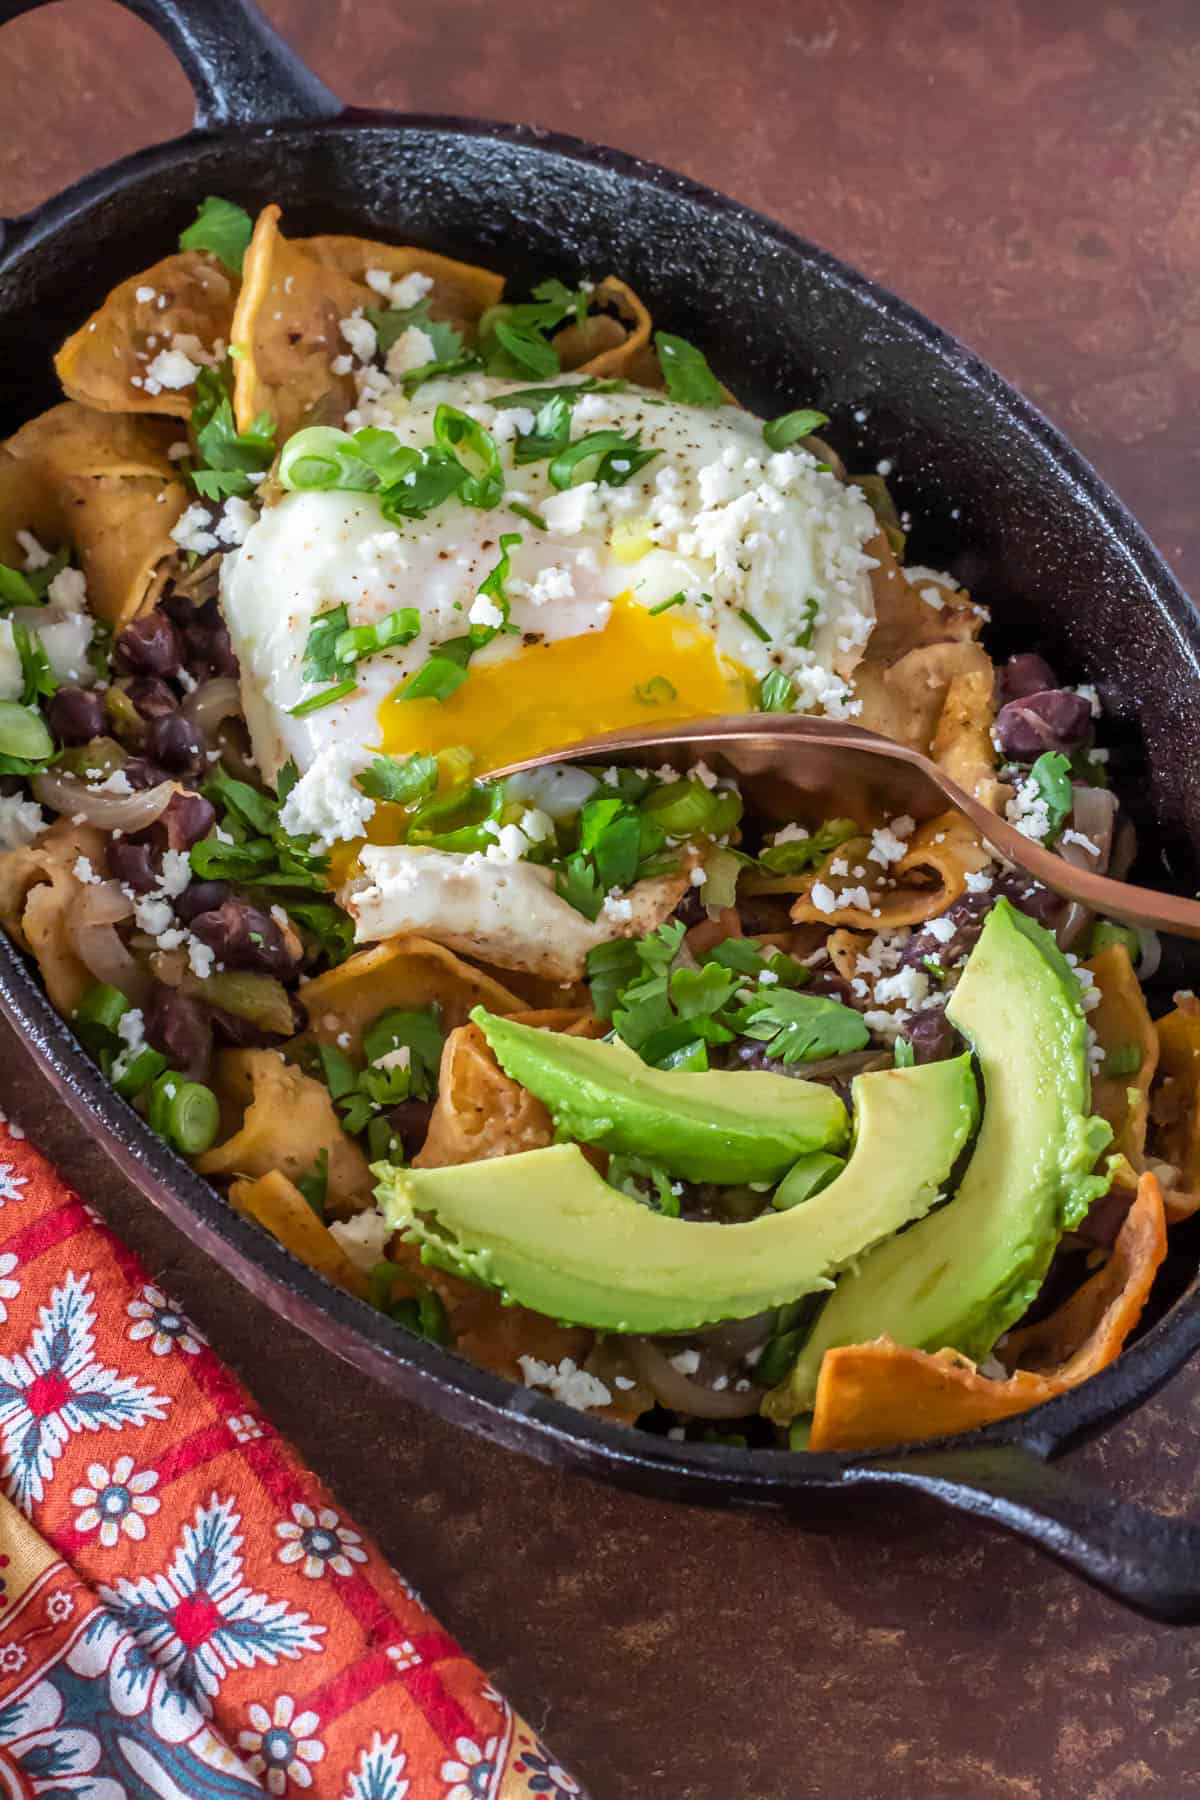 Green Chile Chilaquiles  with a runny egg and avocado in a cast iron dish.